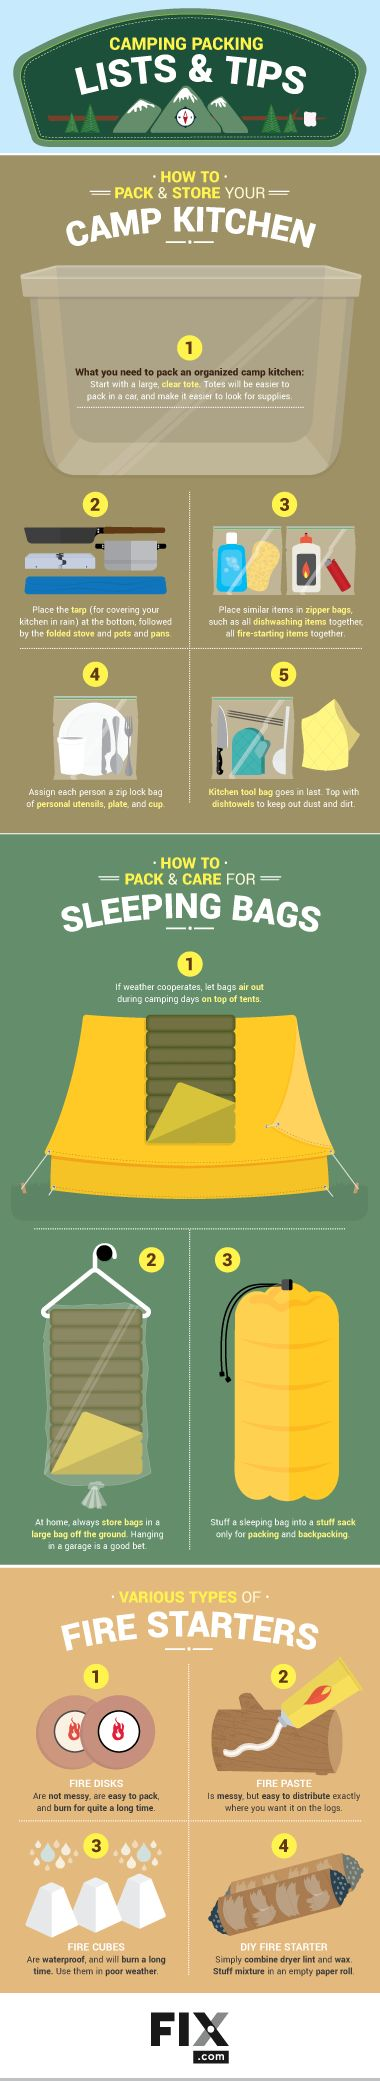 Camping Packing Lists and Tips For The Family Trip | Fix.com